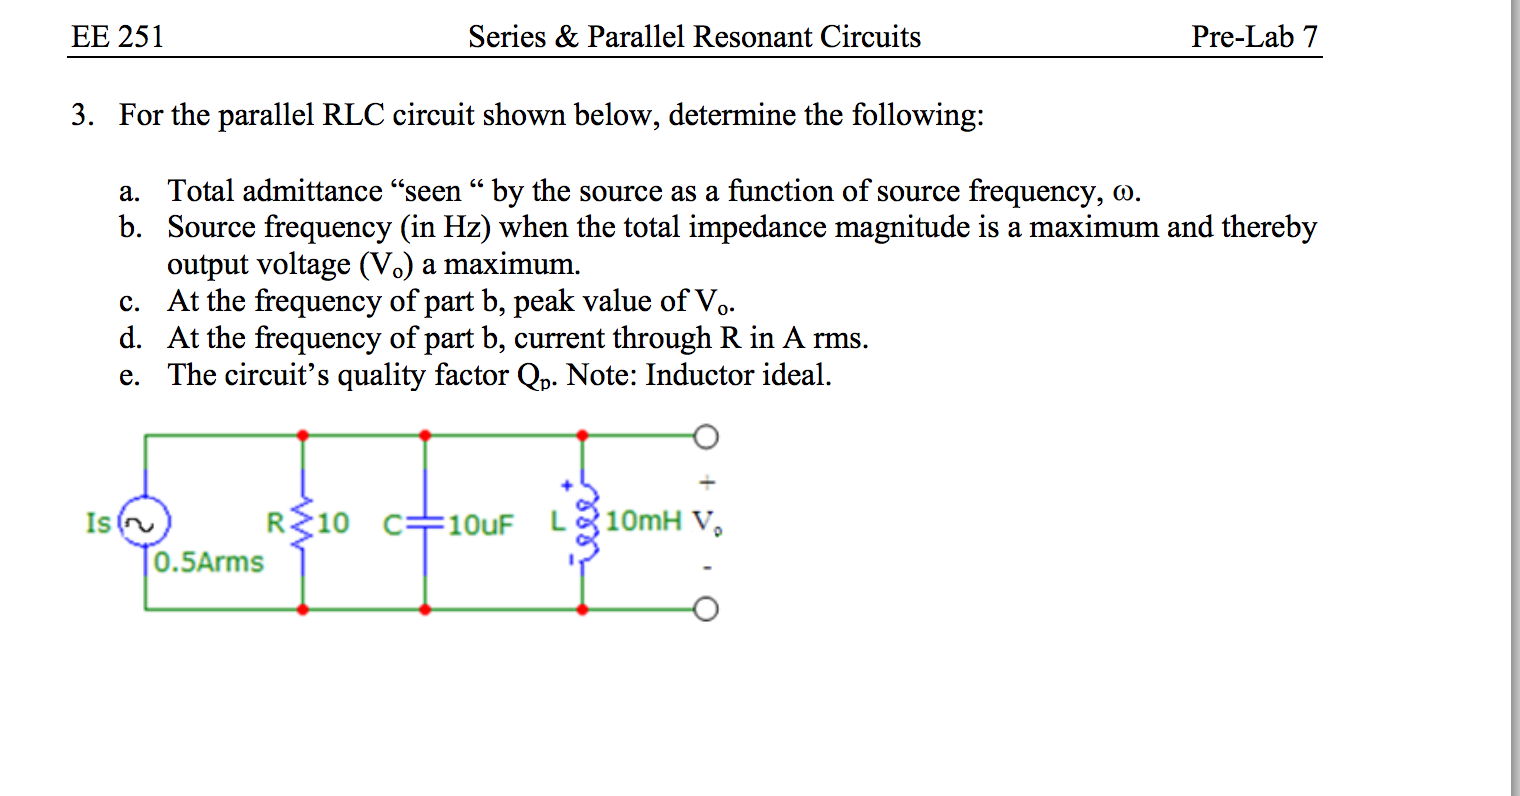 Rlc Circuit Calculator Parallel File Band Pass Svg Impedance Of From Phasor Electronics Forum Circuits For The Shown Below Deter